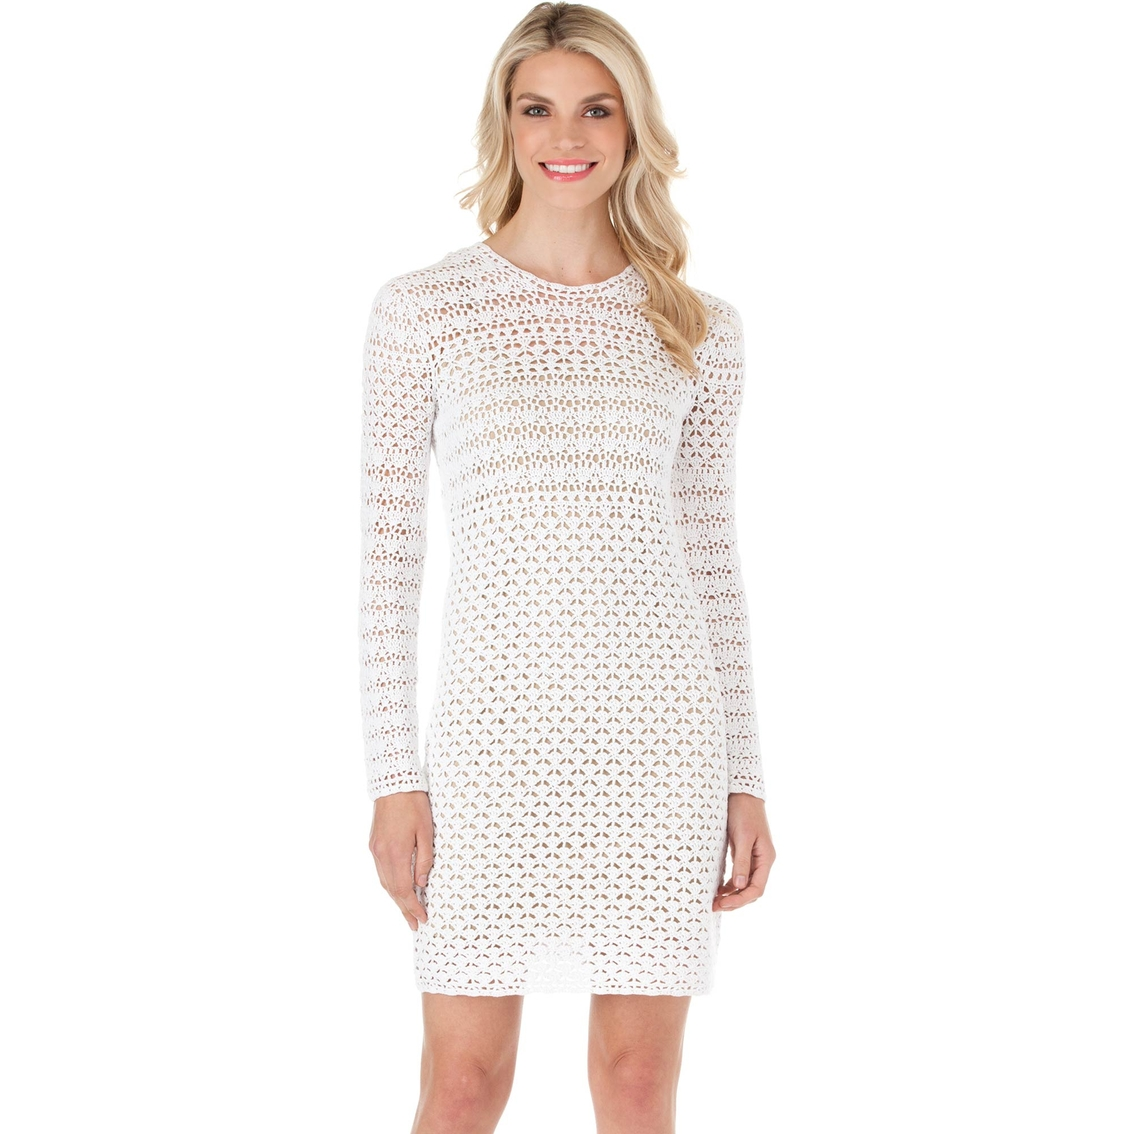 Shop for Sweater Dresses